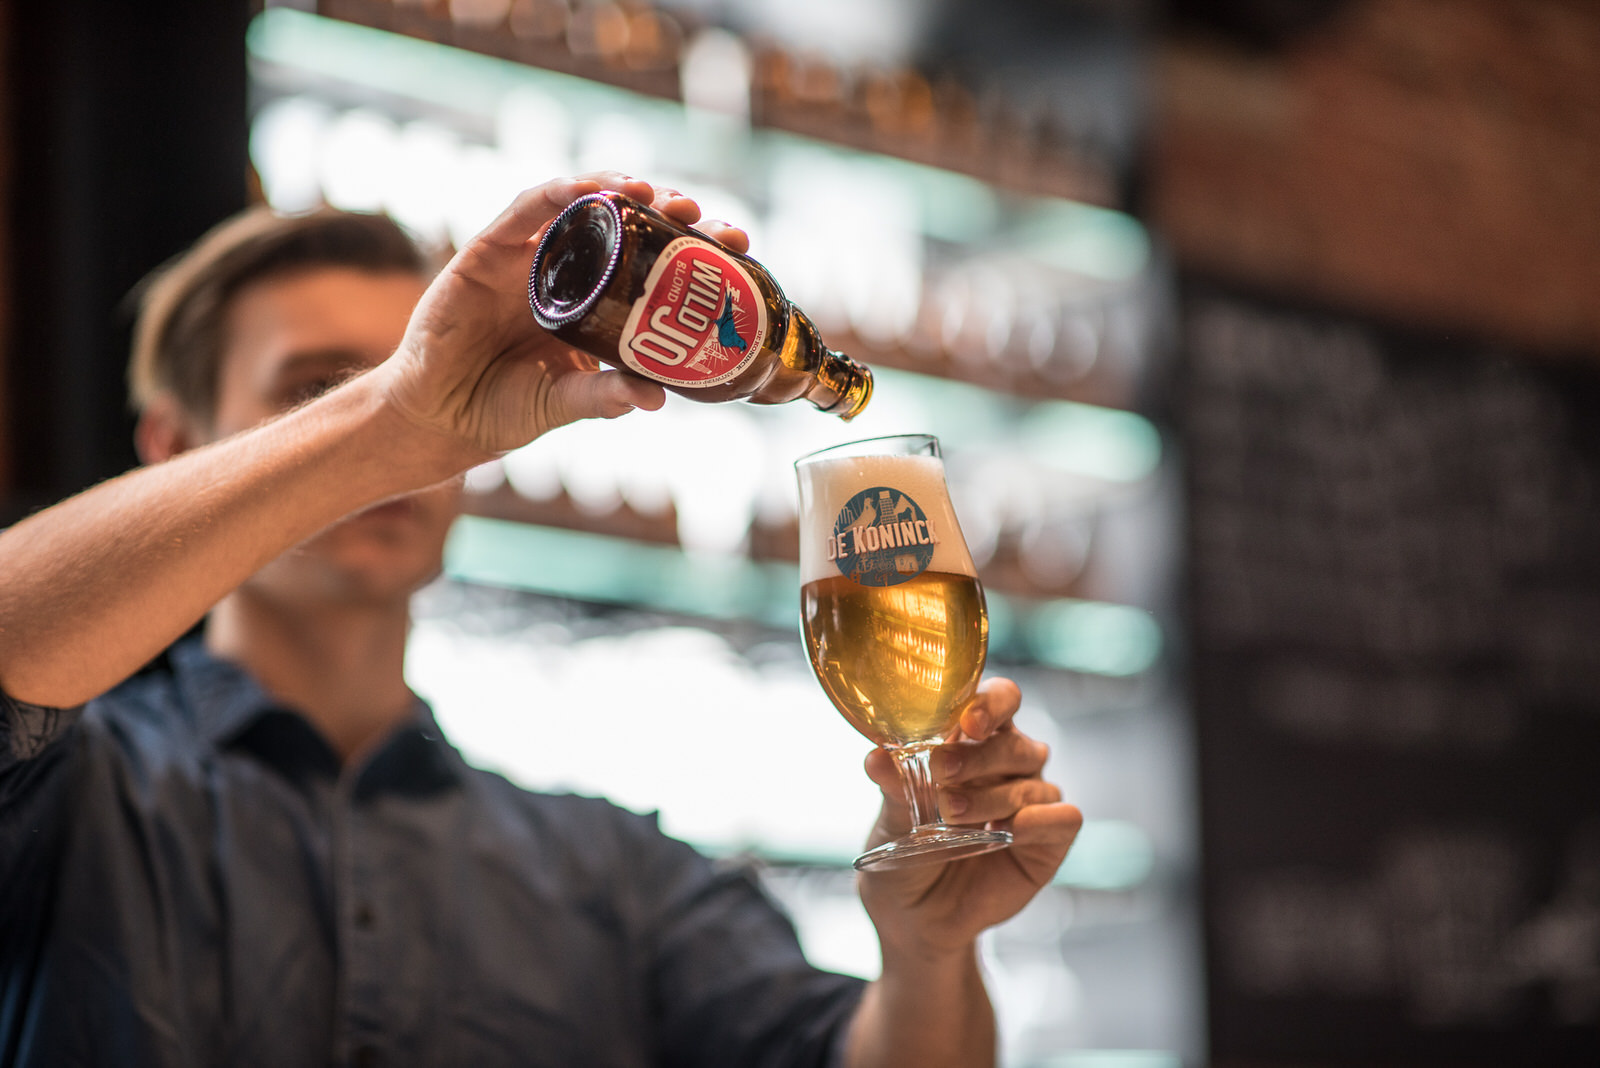 Interactive tour by Antwerp City Brewery De Koninck